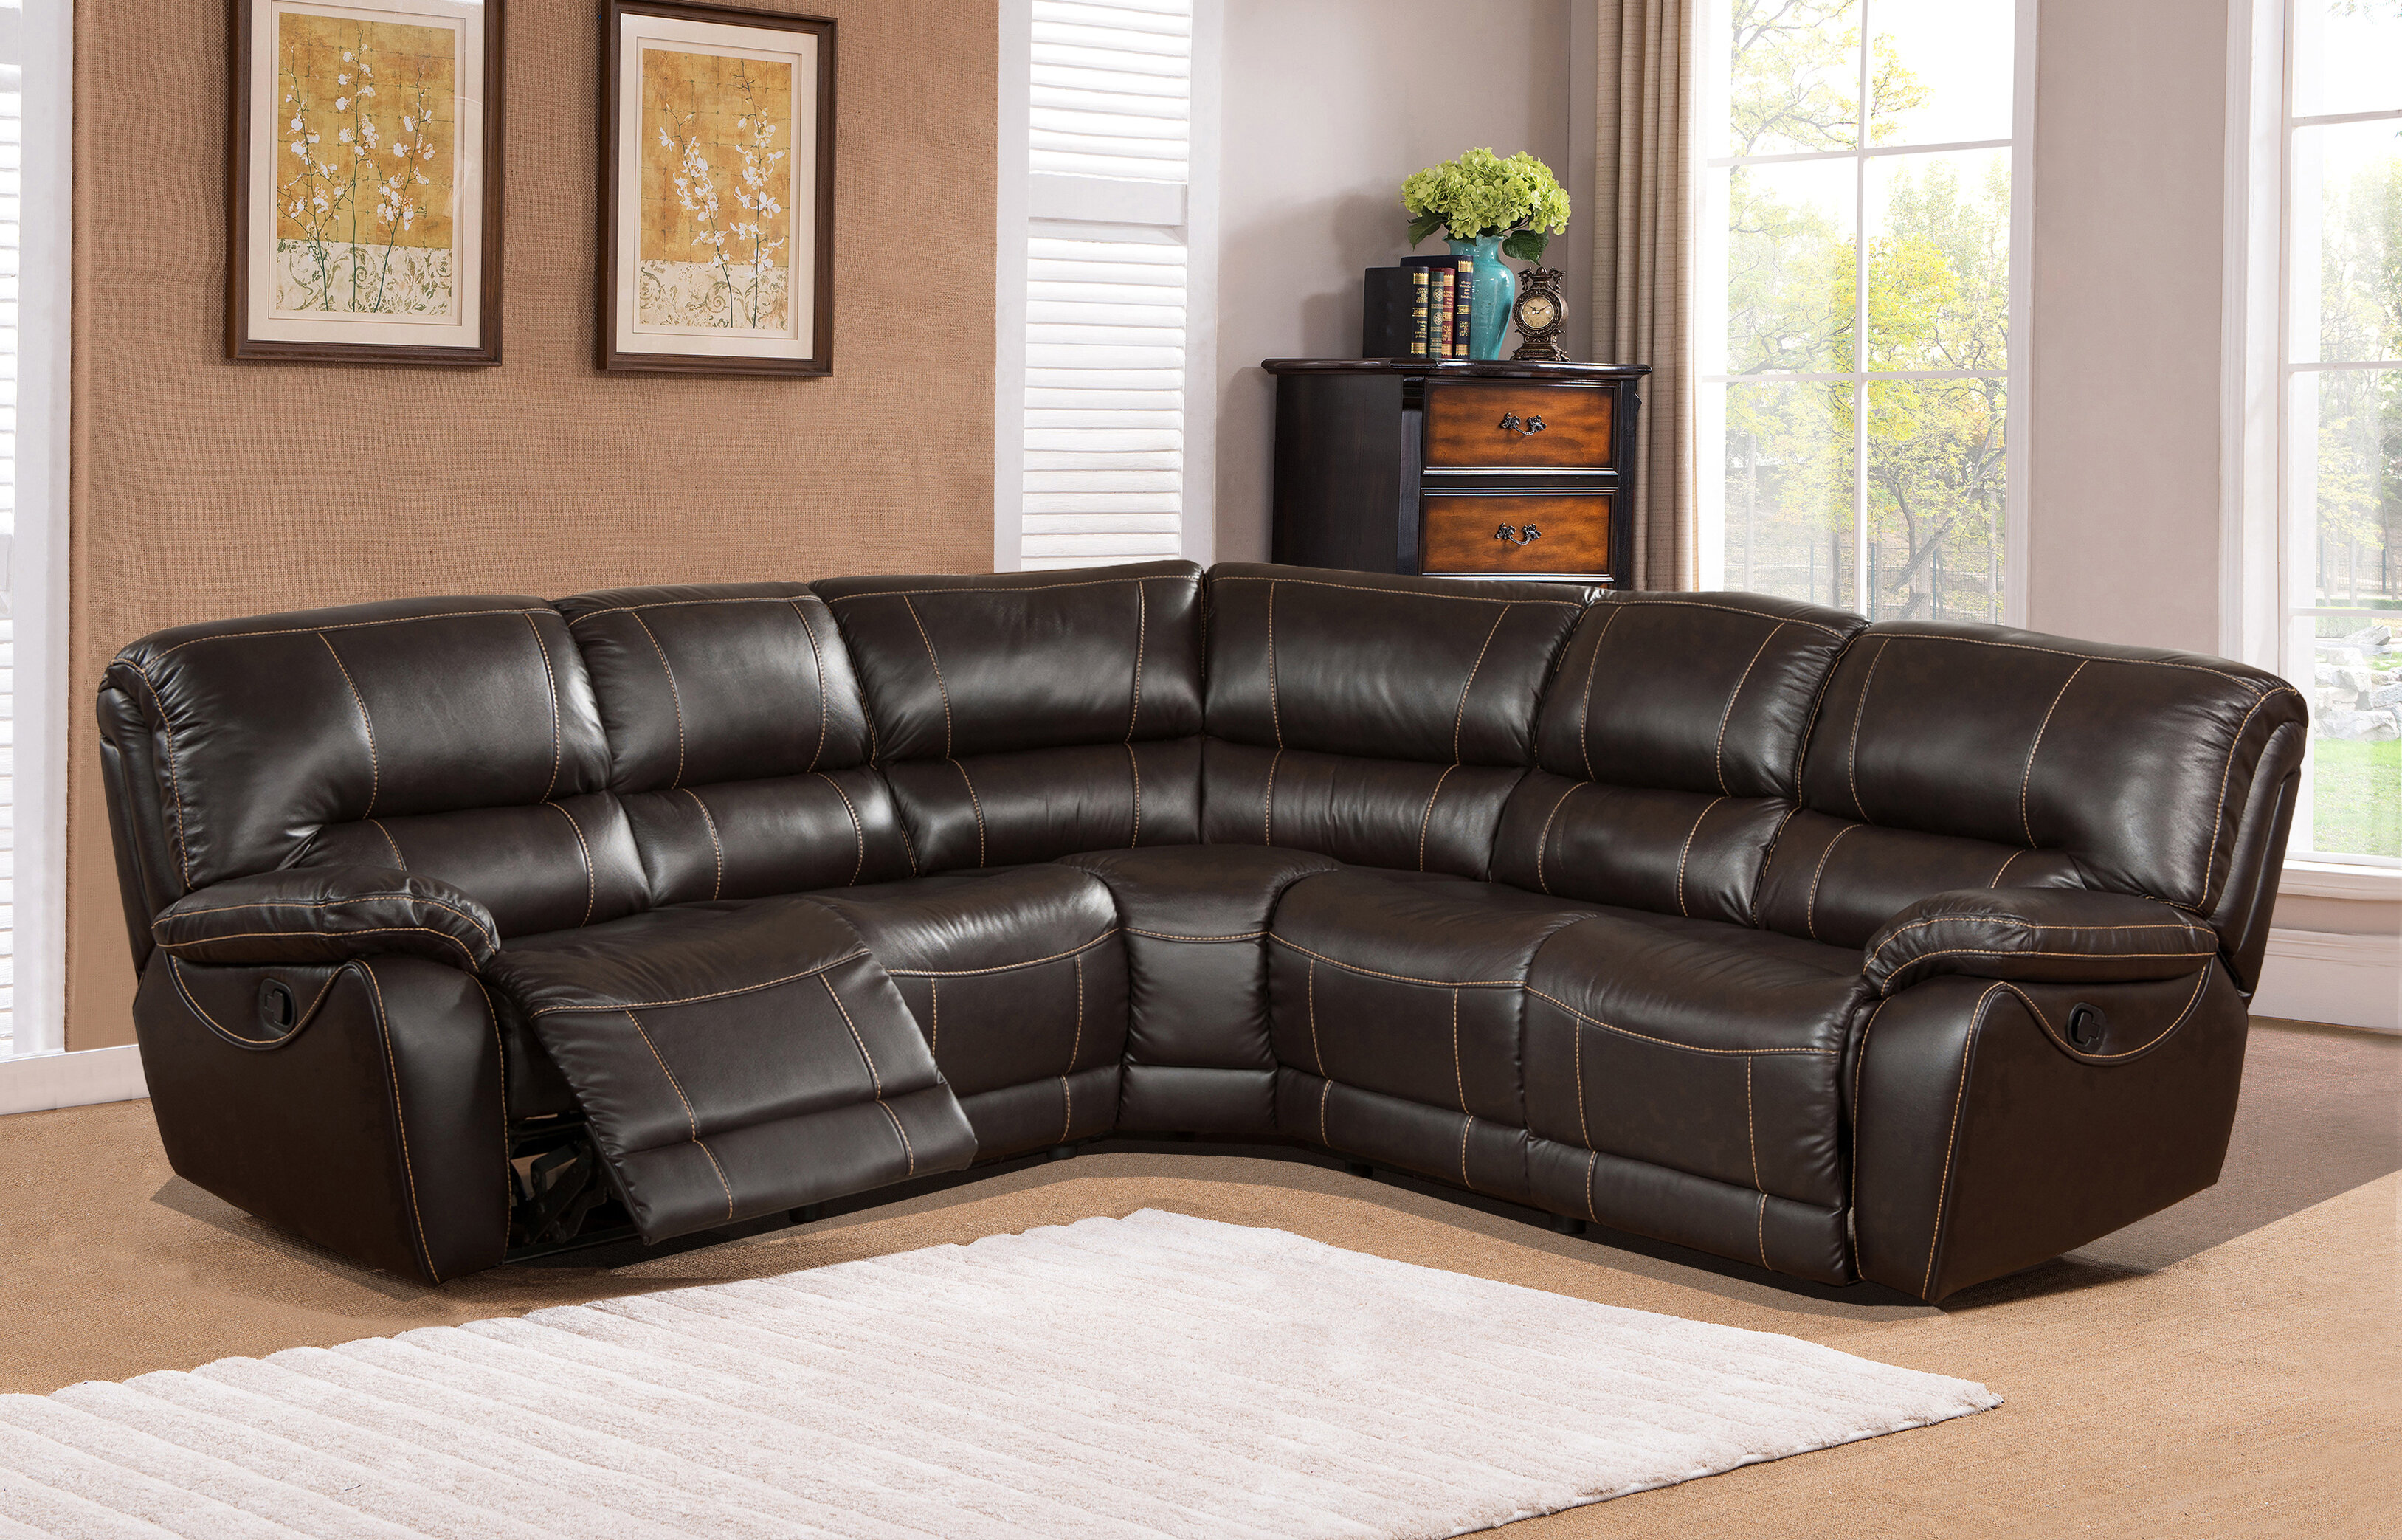 piece reclining coaster sofa product mackenzie leather products with silver color style casual sectional